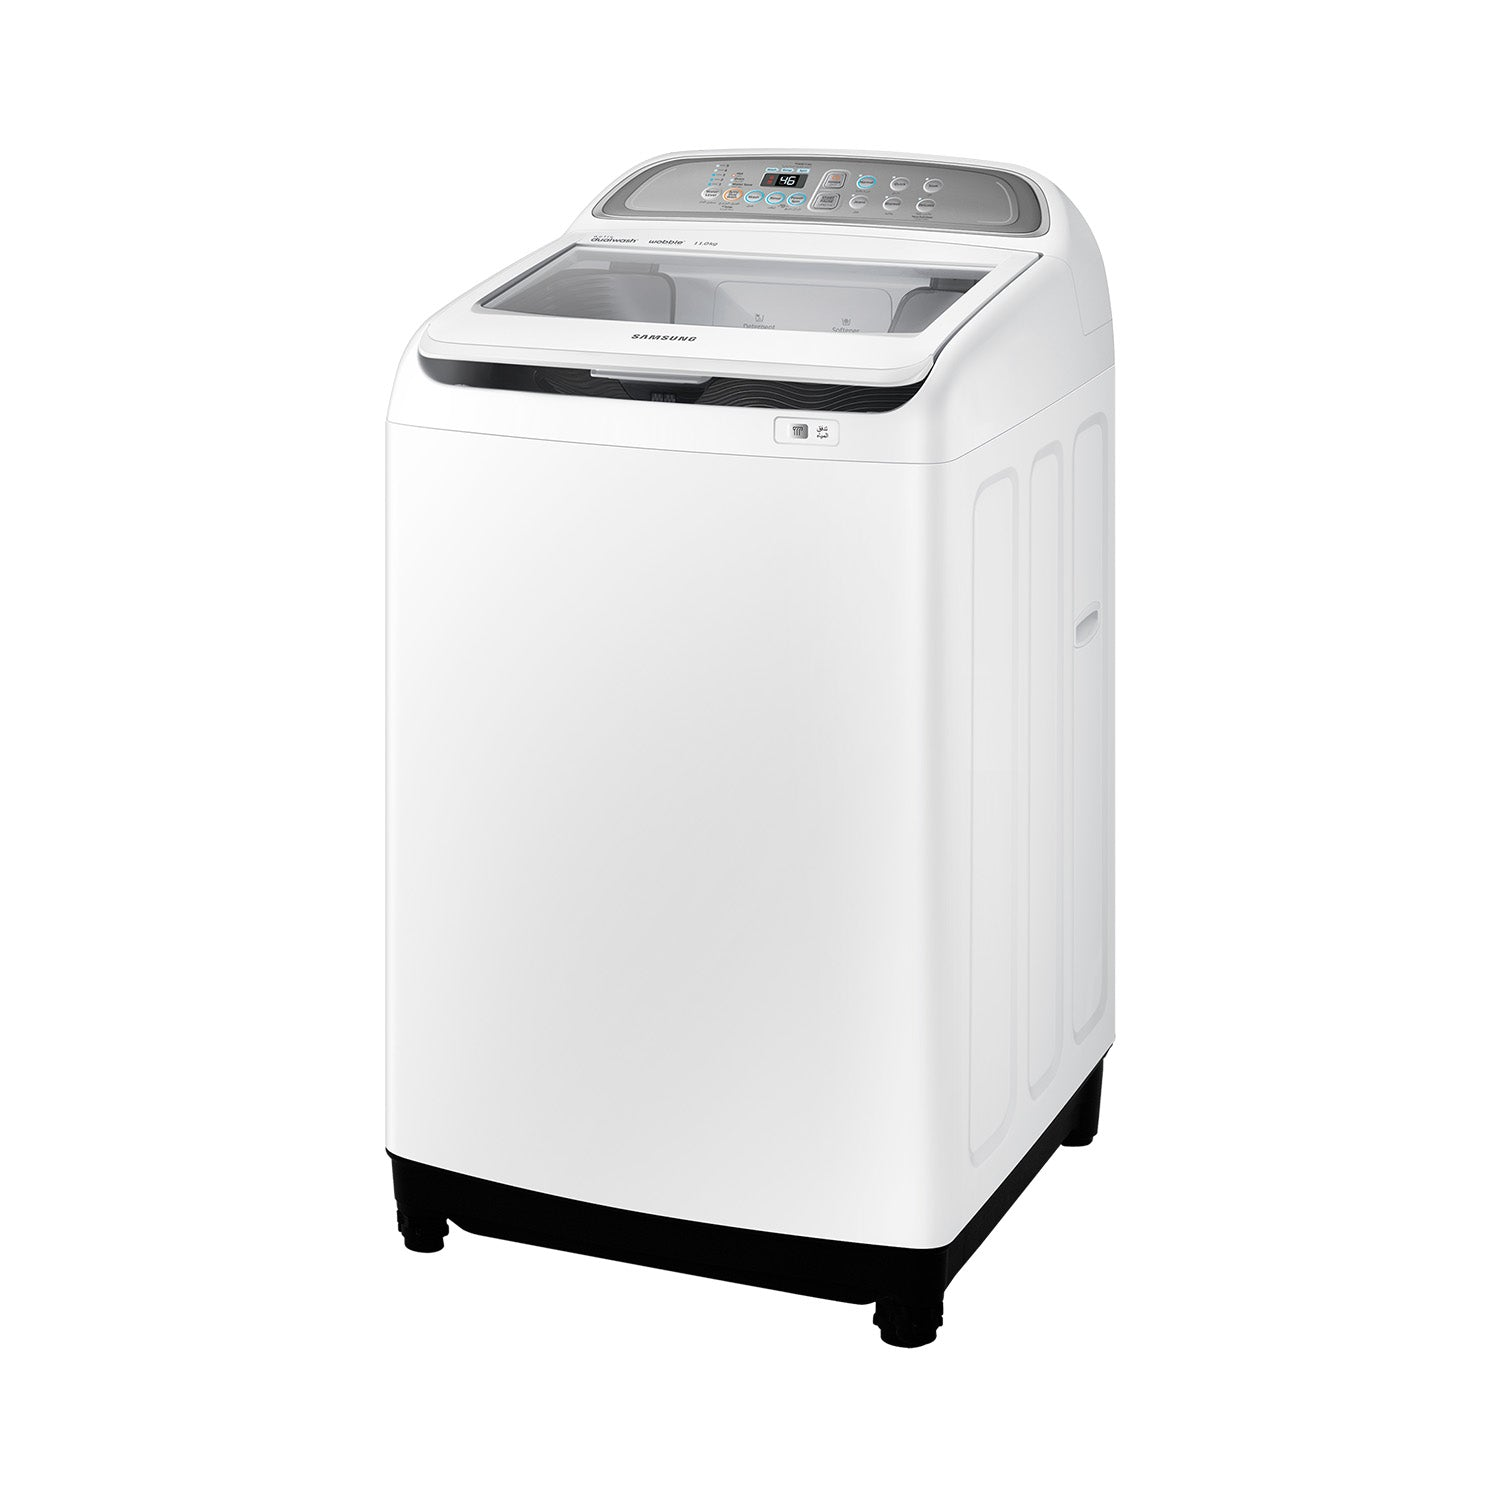 11KG Top Loading Automatic Washer